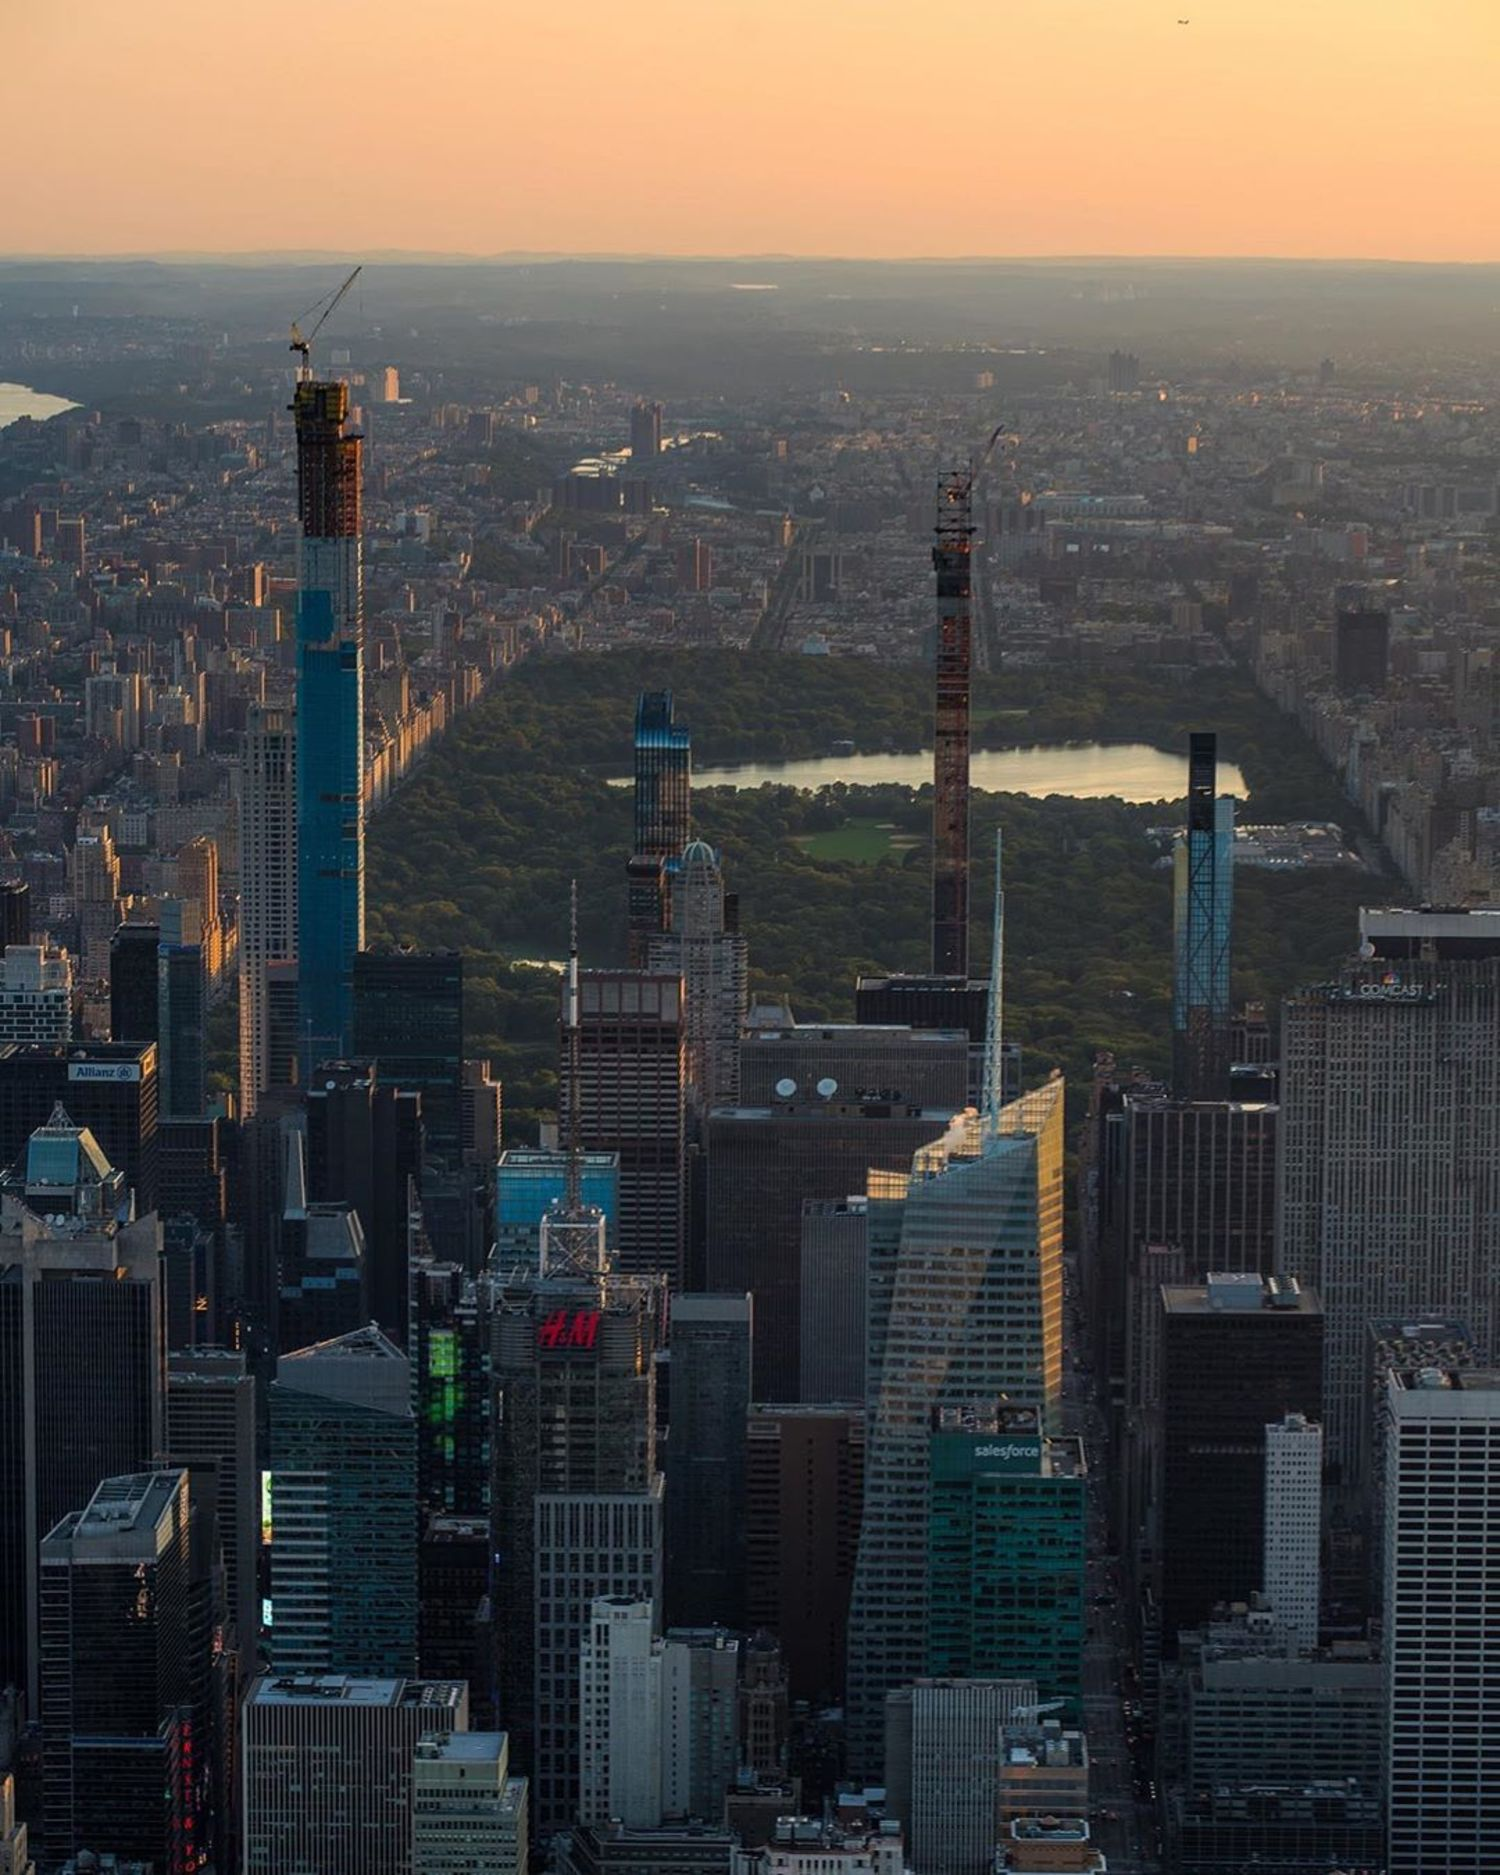 Sunrise over Midtown Manhattan and Central Park